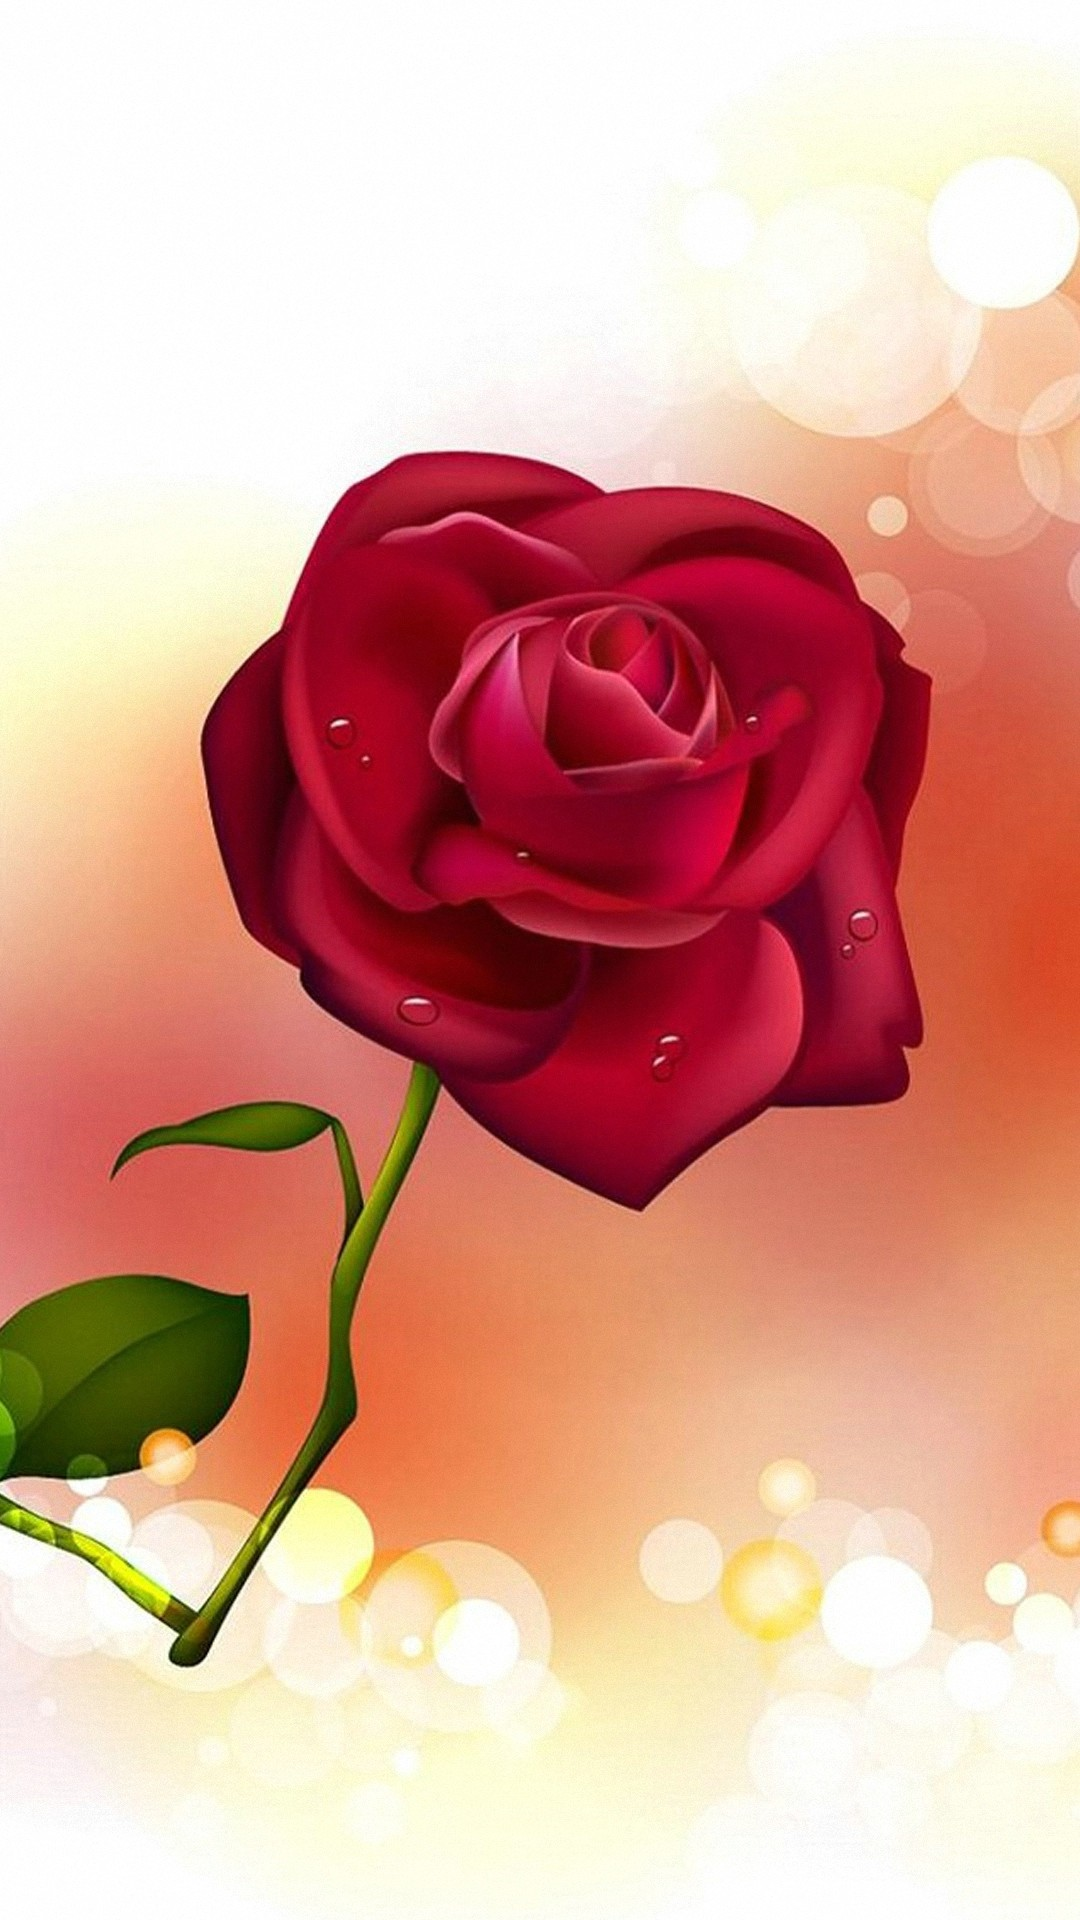 Illustration Of A Rose Iphone Wallpaper